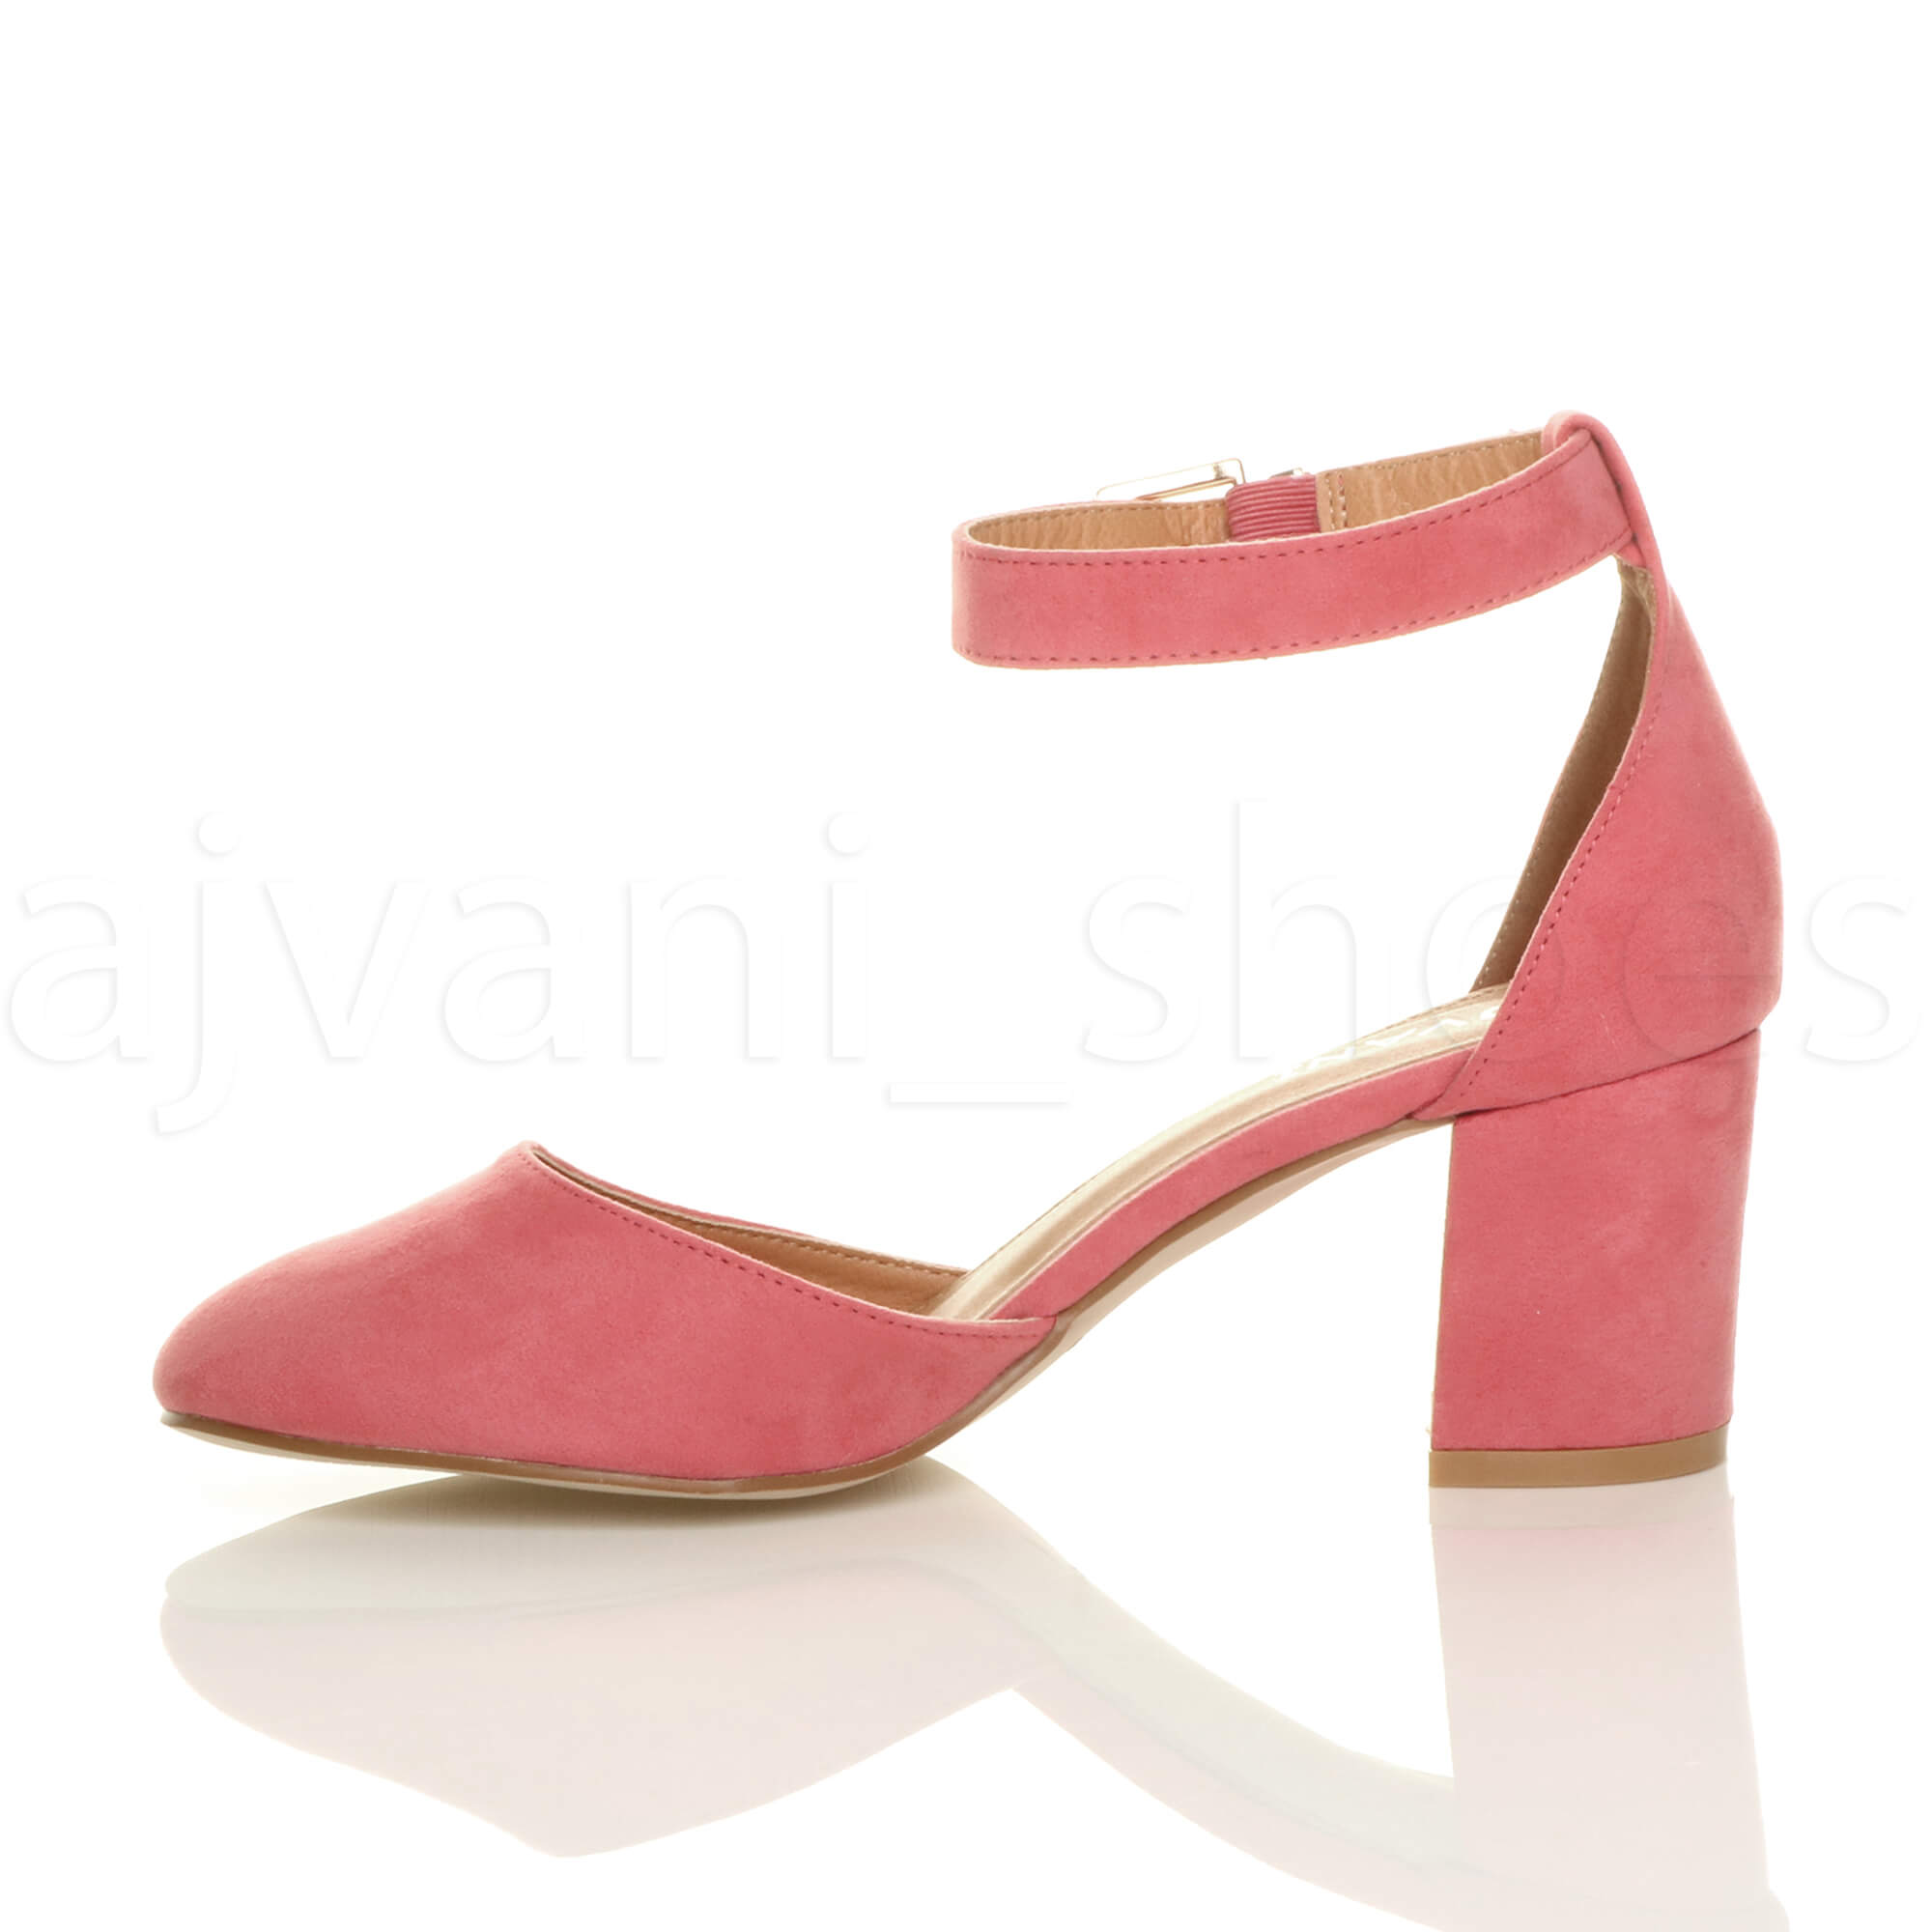 WOMENS-LADIES-LOW-MID-BLOCK-HEEL-ANKLE-STRAP-MARY-JANE-COURT-SHOES-SANDALS-SIZE thumbnail 36